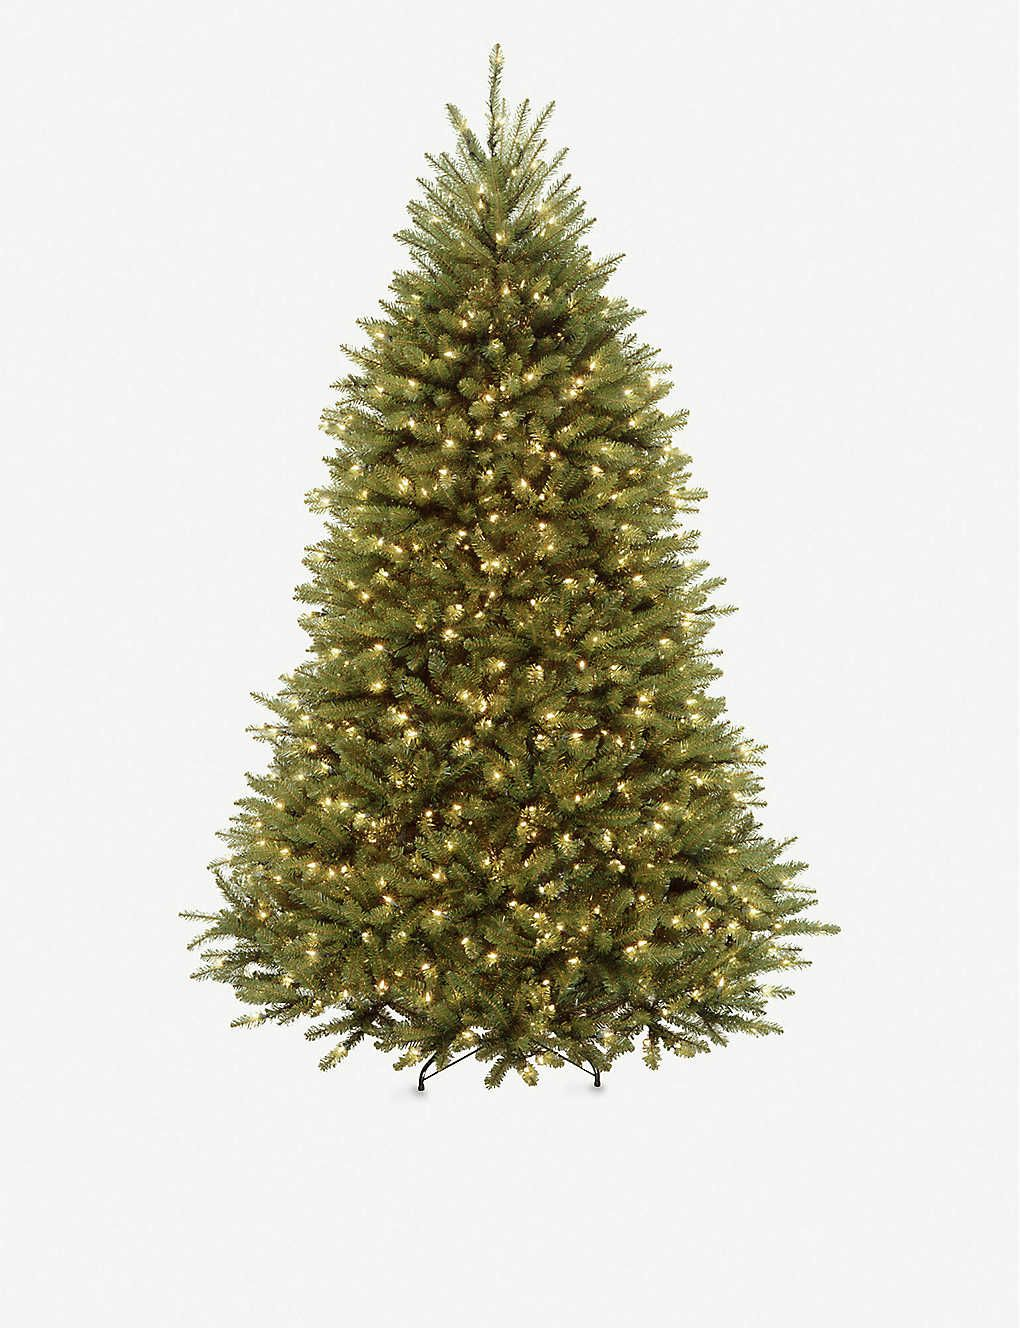 Best 7ft Pre Lit Christmas Trees To Buy